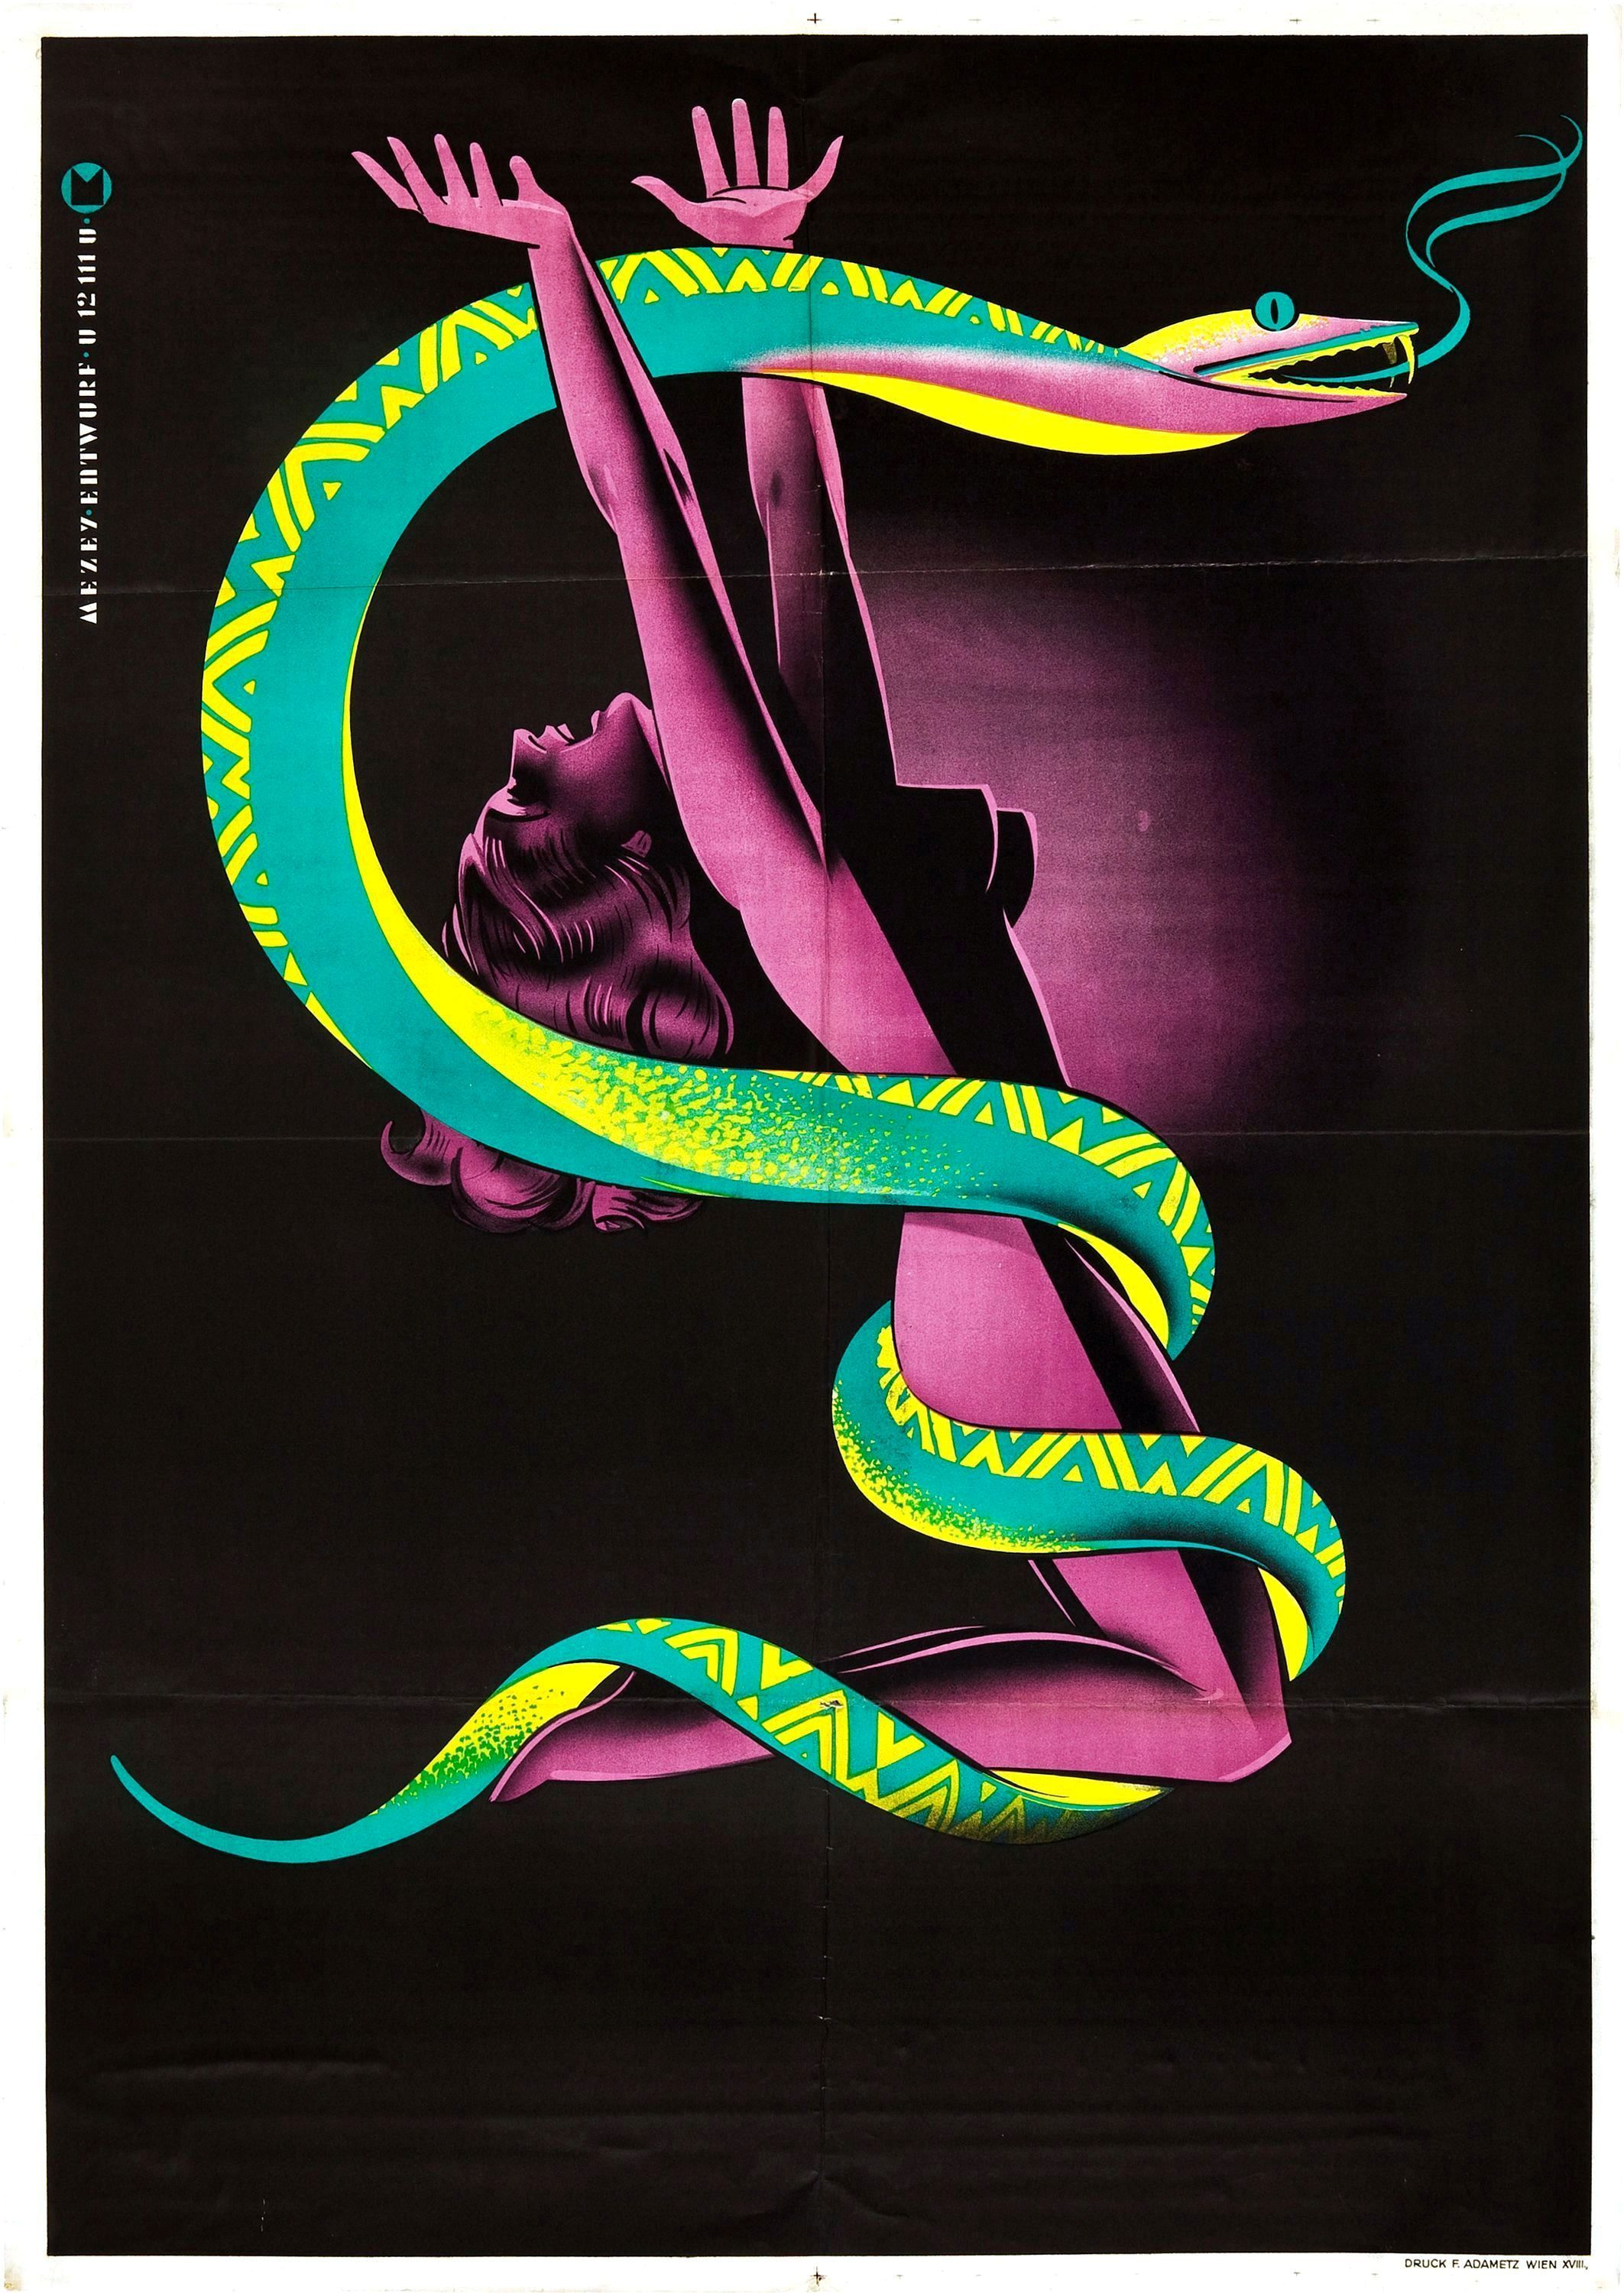 Creeping Poison (1946) in 2020 Illustrations and posters